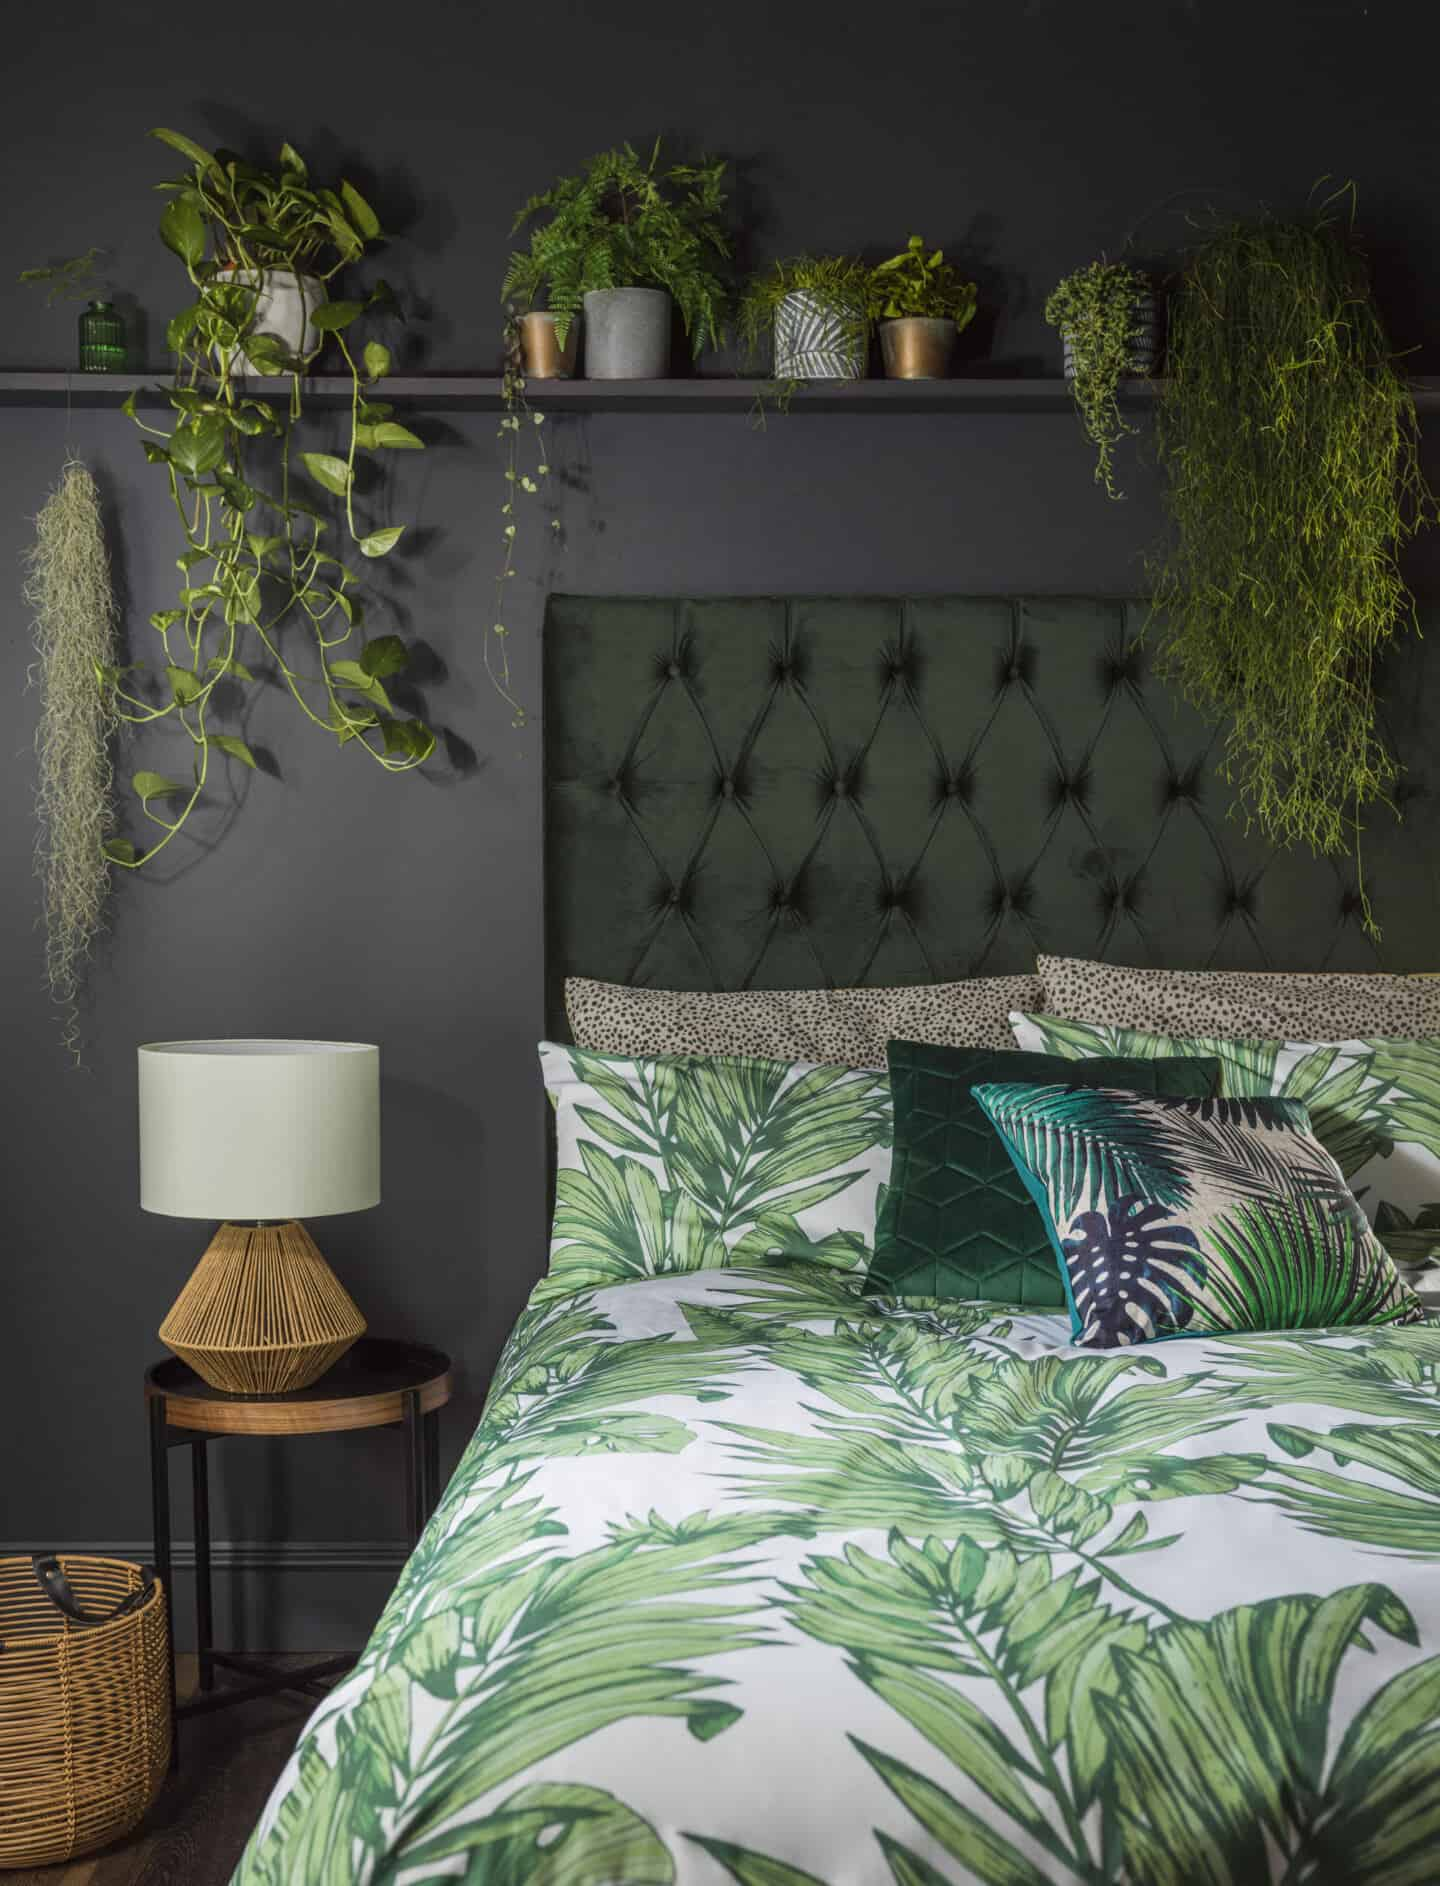 Botanist is a SS20 interiors trend by Very.co.uk that features nature in interiors. This bedroom features a plush velvet headboard, printed leafy bedding and lots of plants on a shelf above the bed